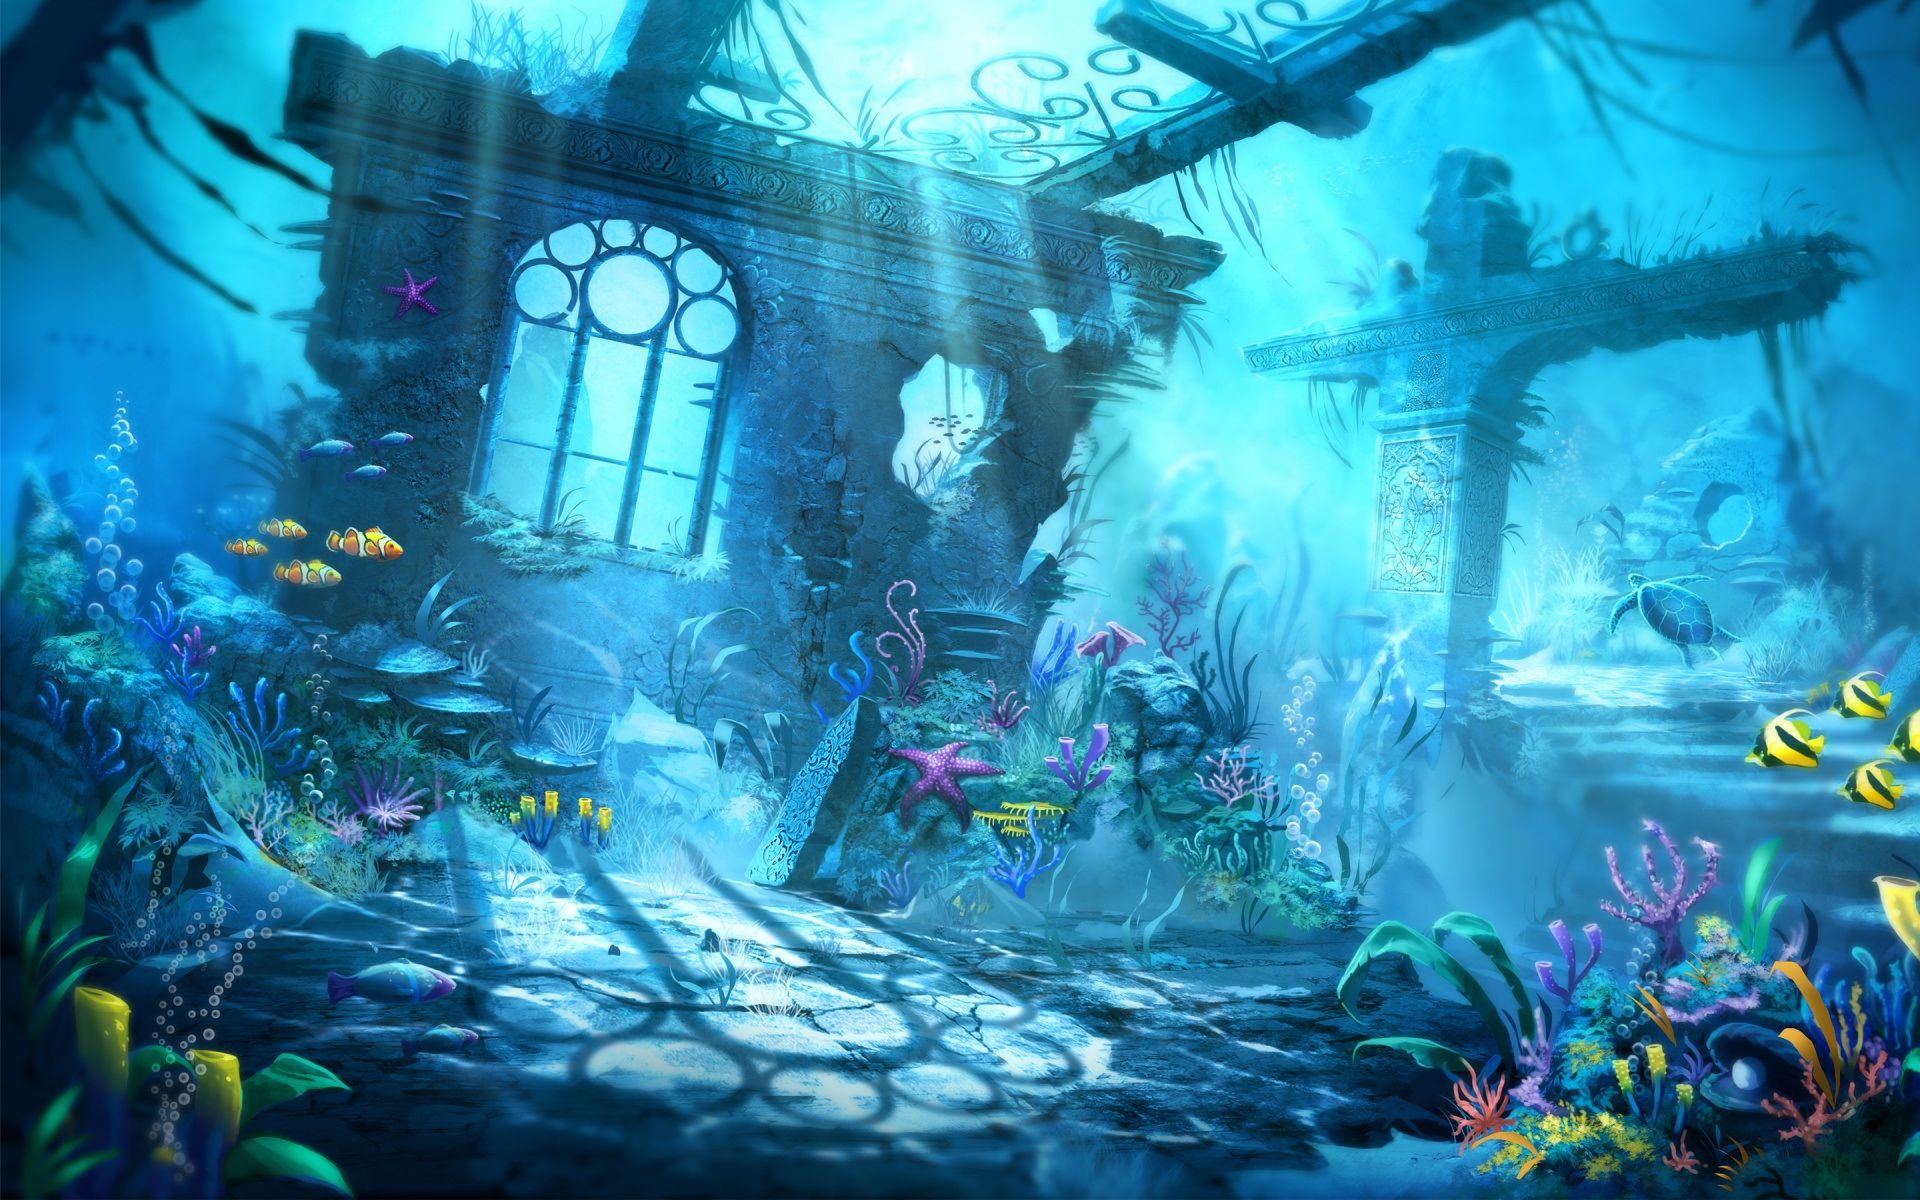 design house china html with Trine Underwater Scene Fantasy Photos on Wholesale Scythe Weapon likewise 1003226 32437451260 moreover Simple Asian Pattern likewise Trine Underwater Scene Fantasy Photos moreover Ot7mp2wk7s6er3ej8b3l4223.